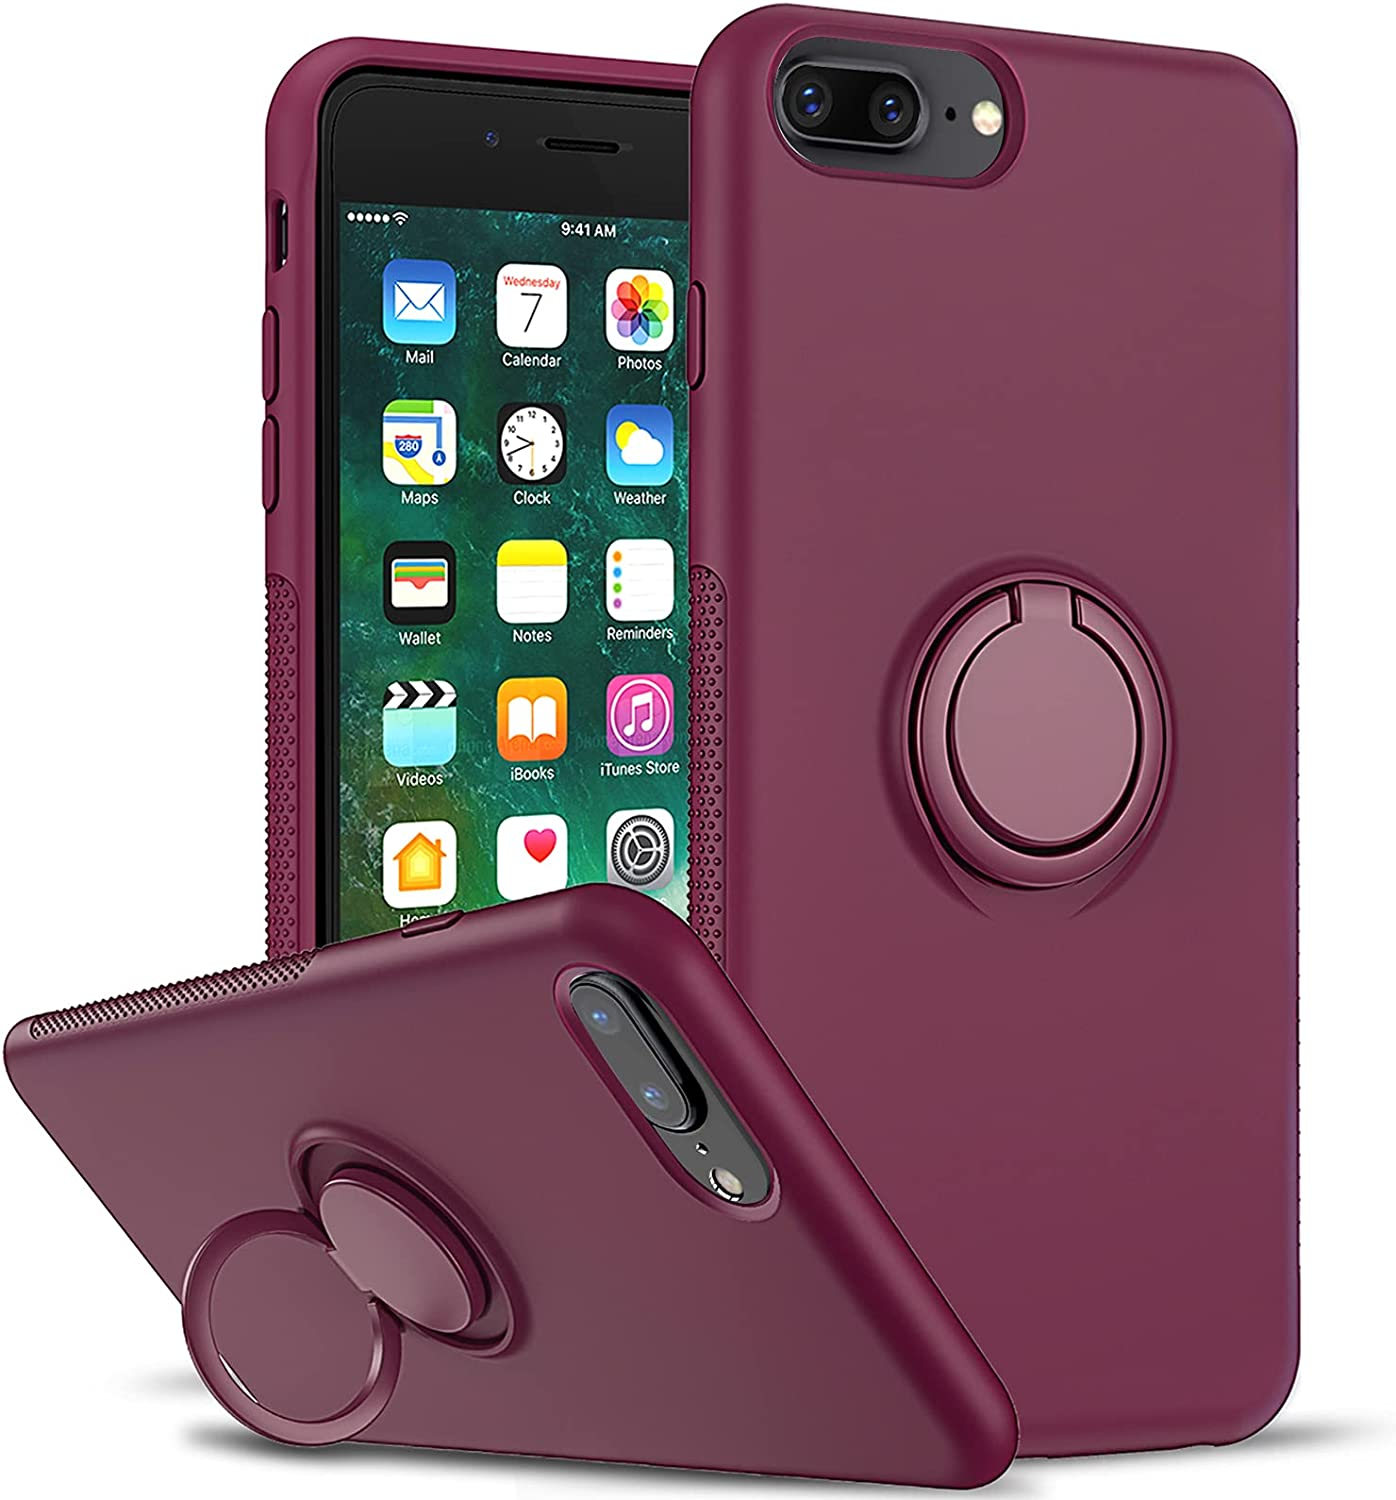 LeYi Compatible with iPhone 8 Plus Case, iPhone 7 Plus Case, iPhone 6s Plus Case, Soft Microfiber Liner Shock Absorption Gel Rubber Liquid Silicone Cover for iPhone 6 Plus, Wine Red